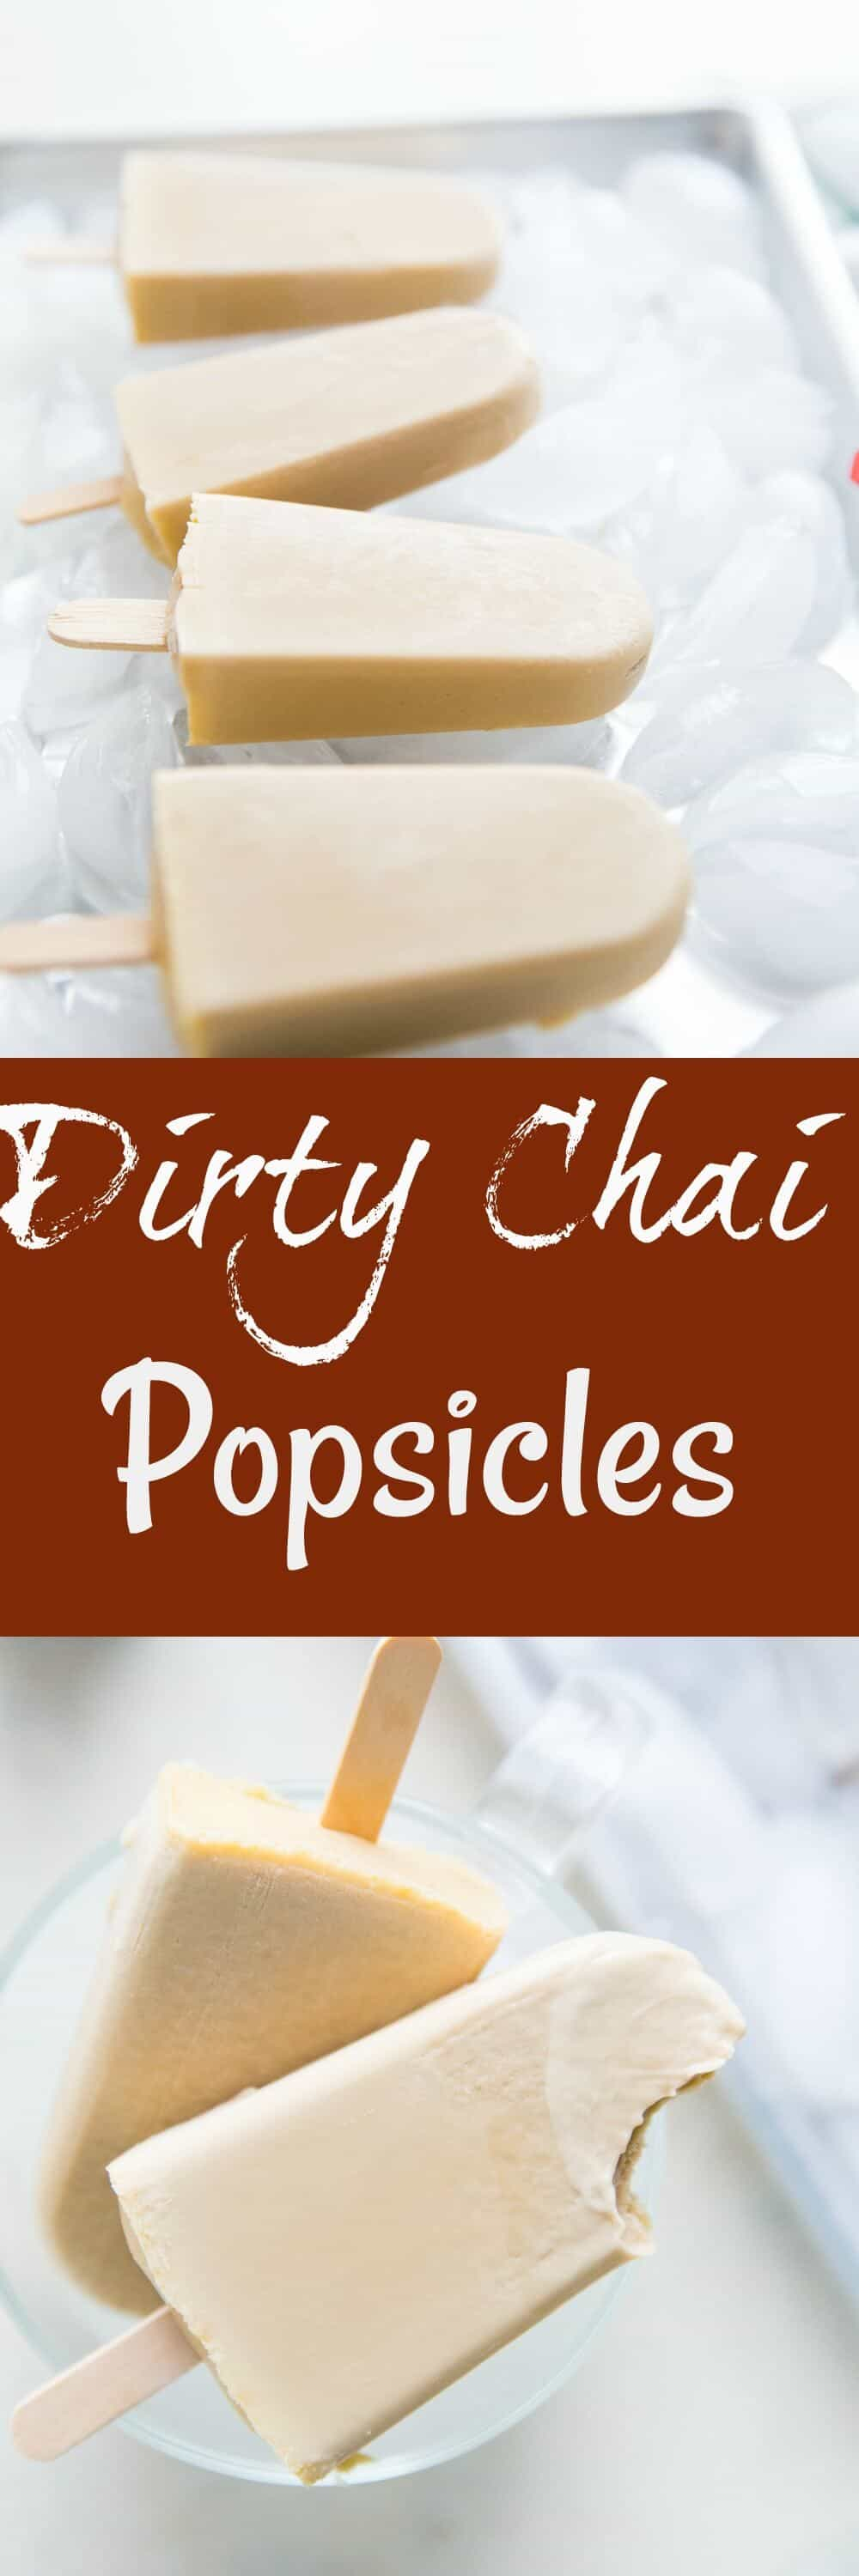 Espresso lovers and tea lover unite over these fun frozen treats! Dirty chai is the perfect blend of coffee and tea all in an ultra creamy popsicle!